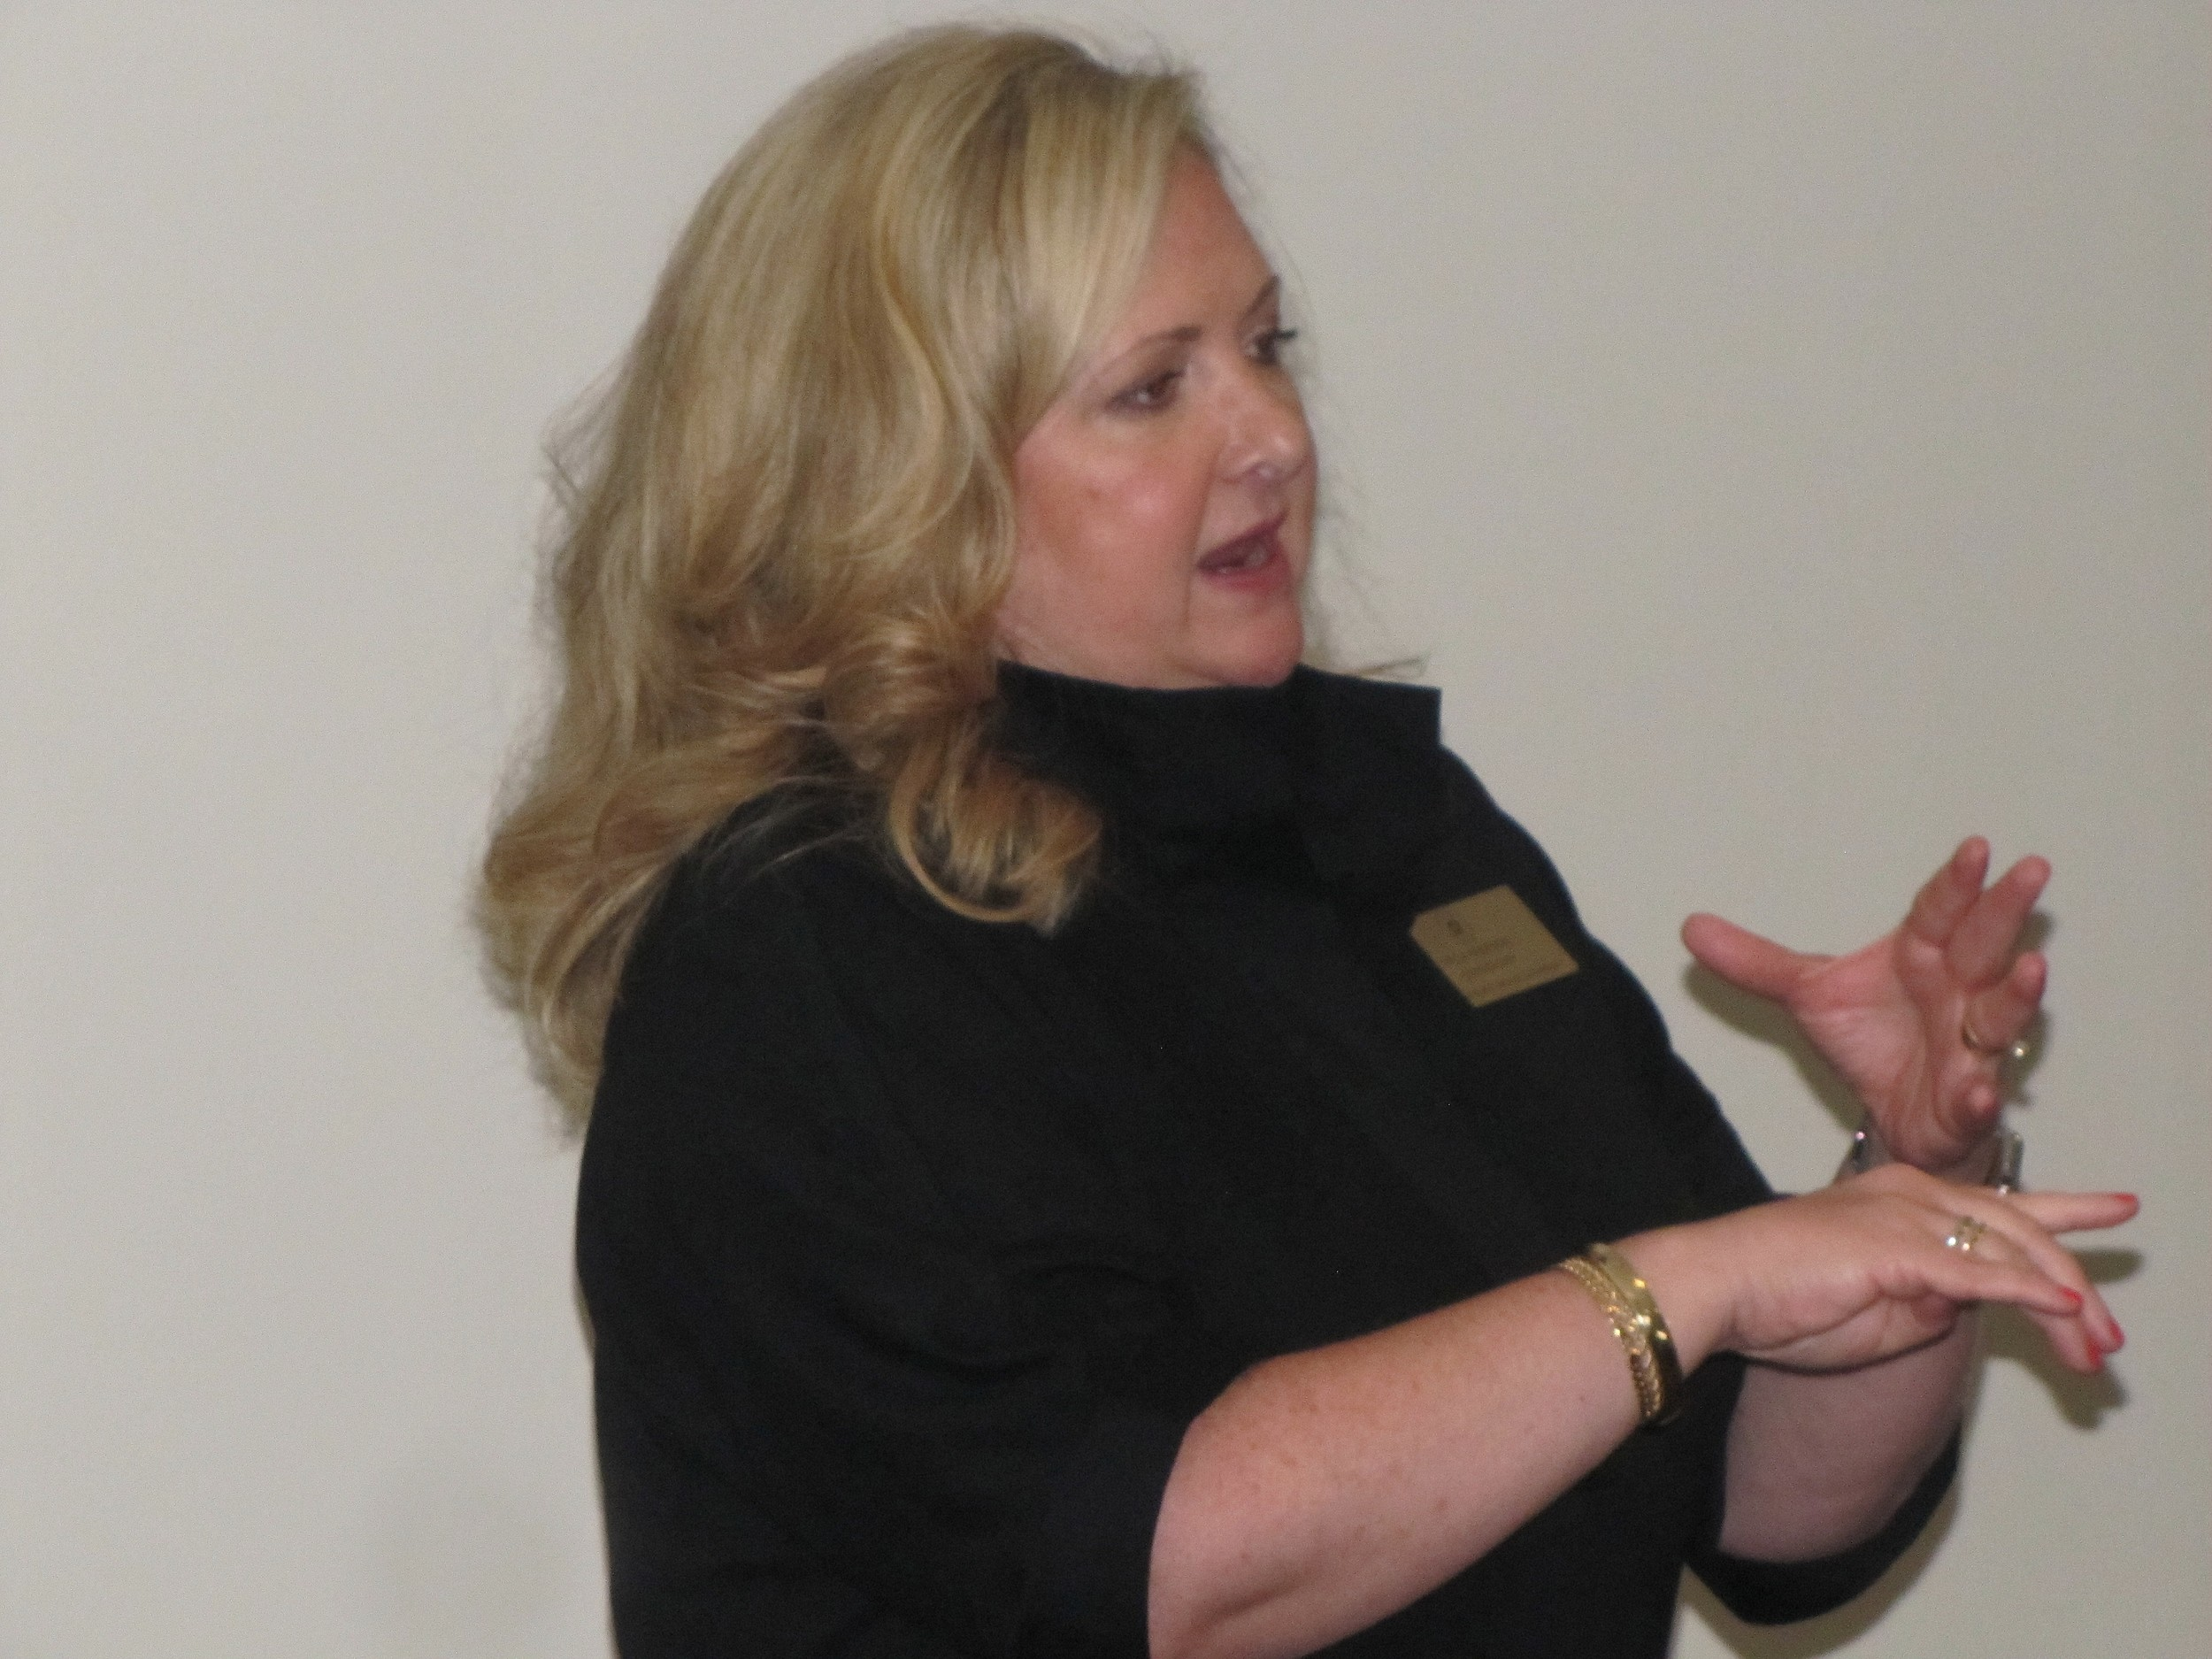 District 5 Public Service Commissioner Tricia Pridemore spoke at Wednesday's North Georgia Power Connectors luncheon in Cartersville.